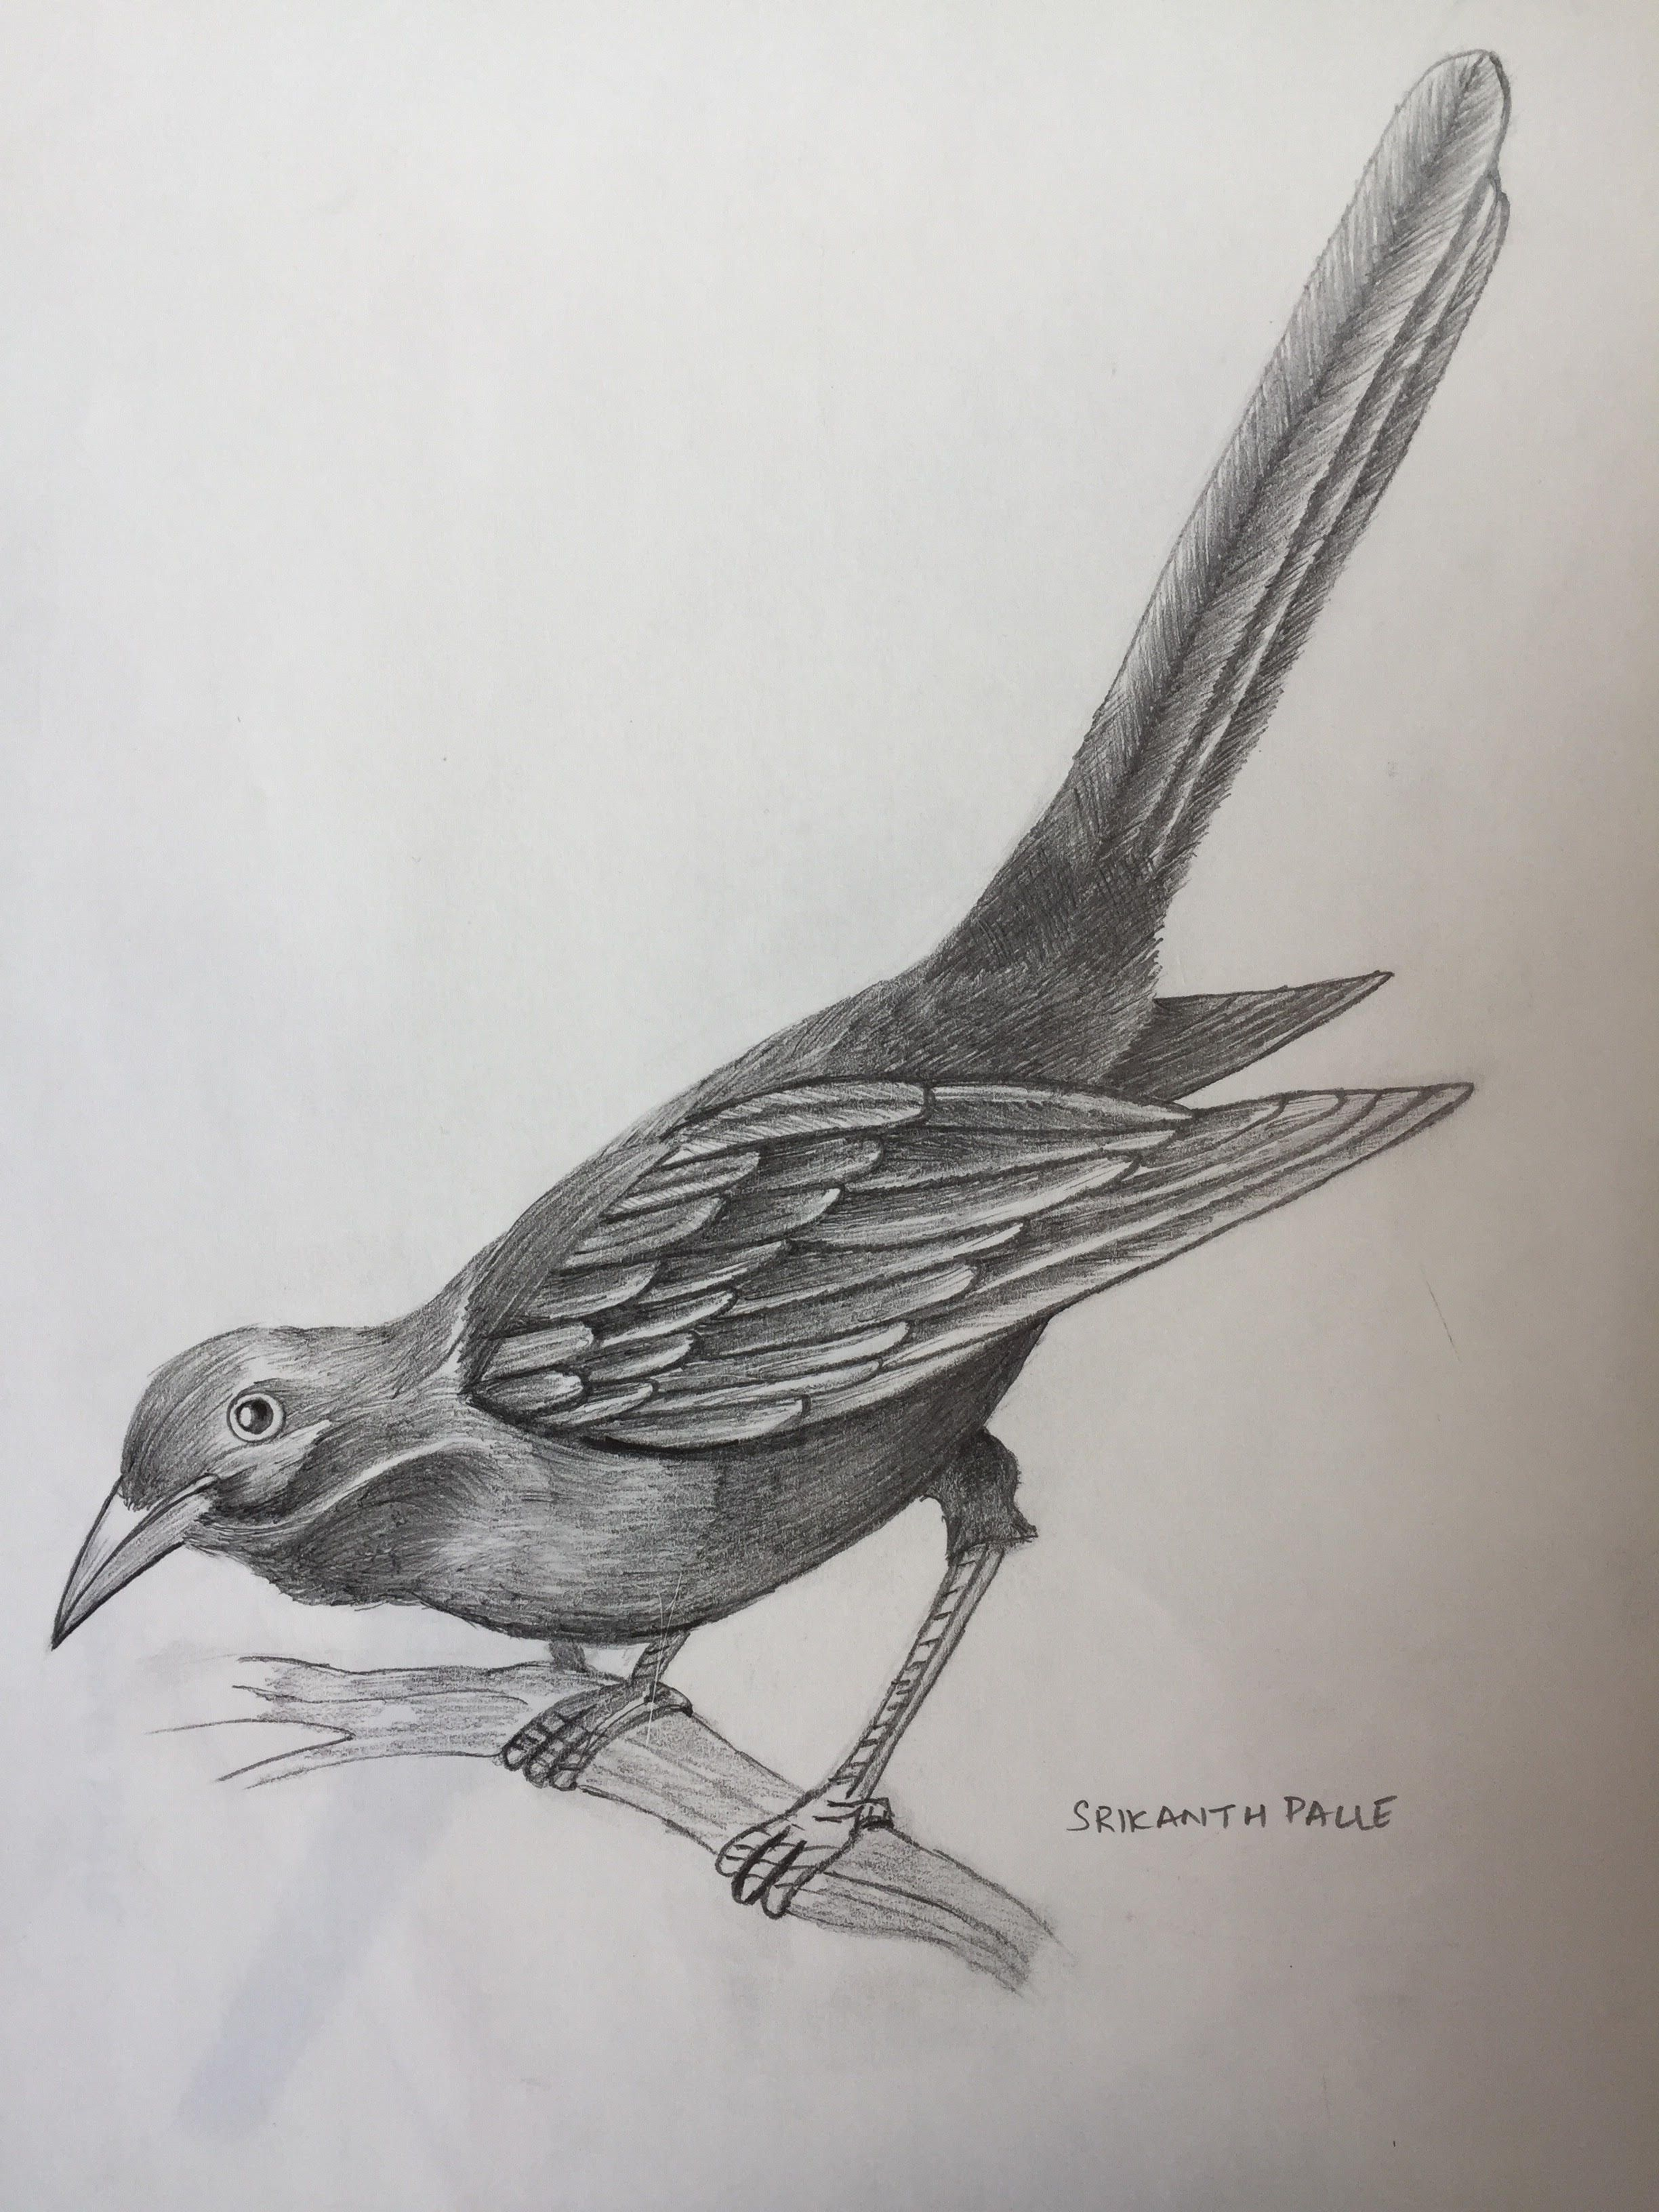 This is a pencil sketch on the bird koel